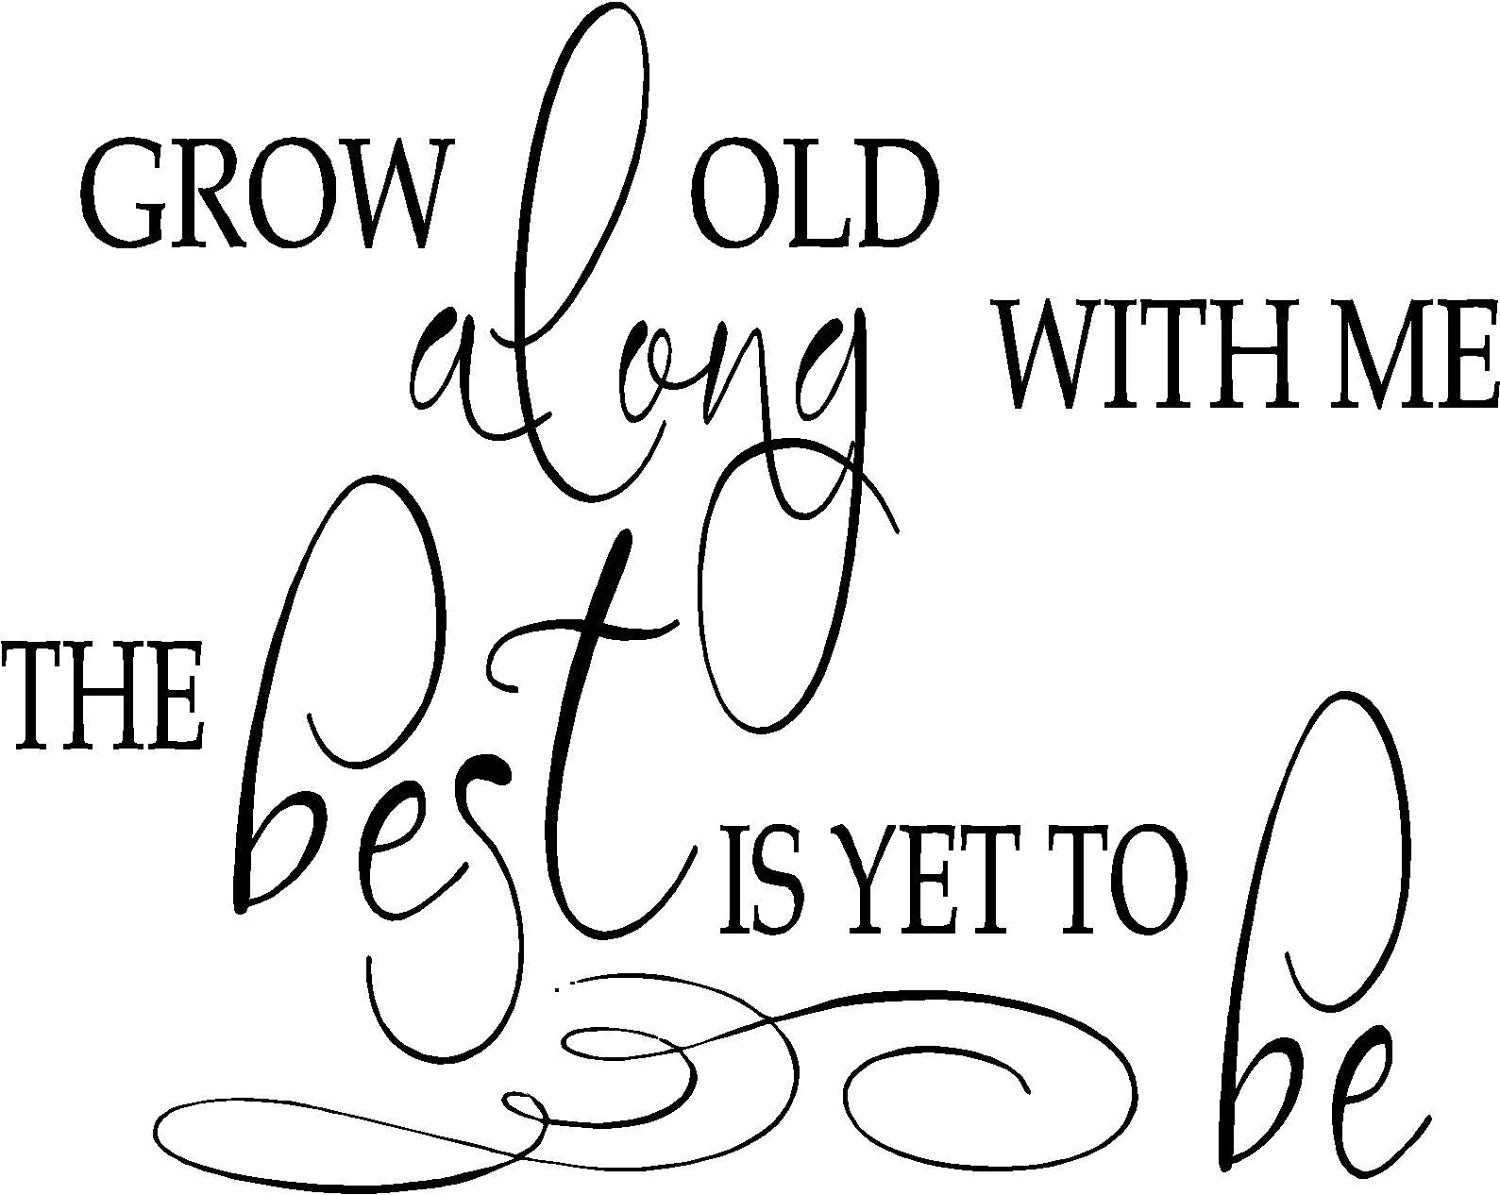 Quote-Grow old with me the best is yet to by vinylforall